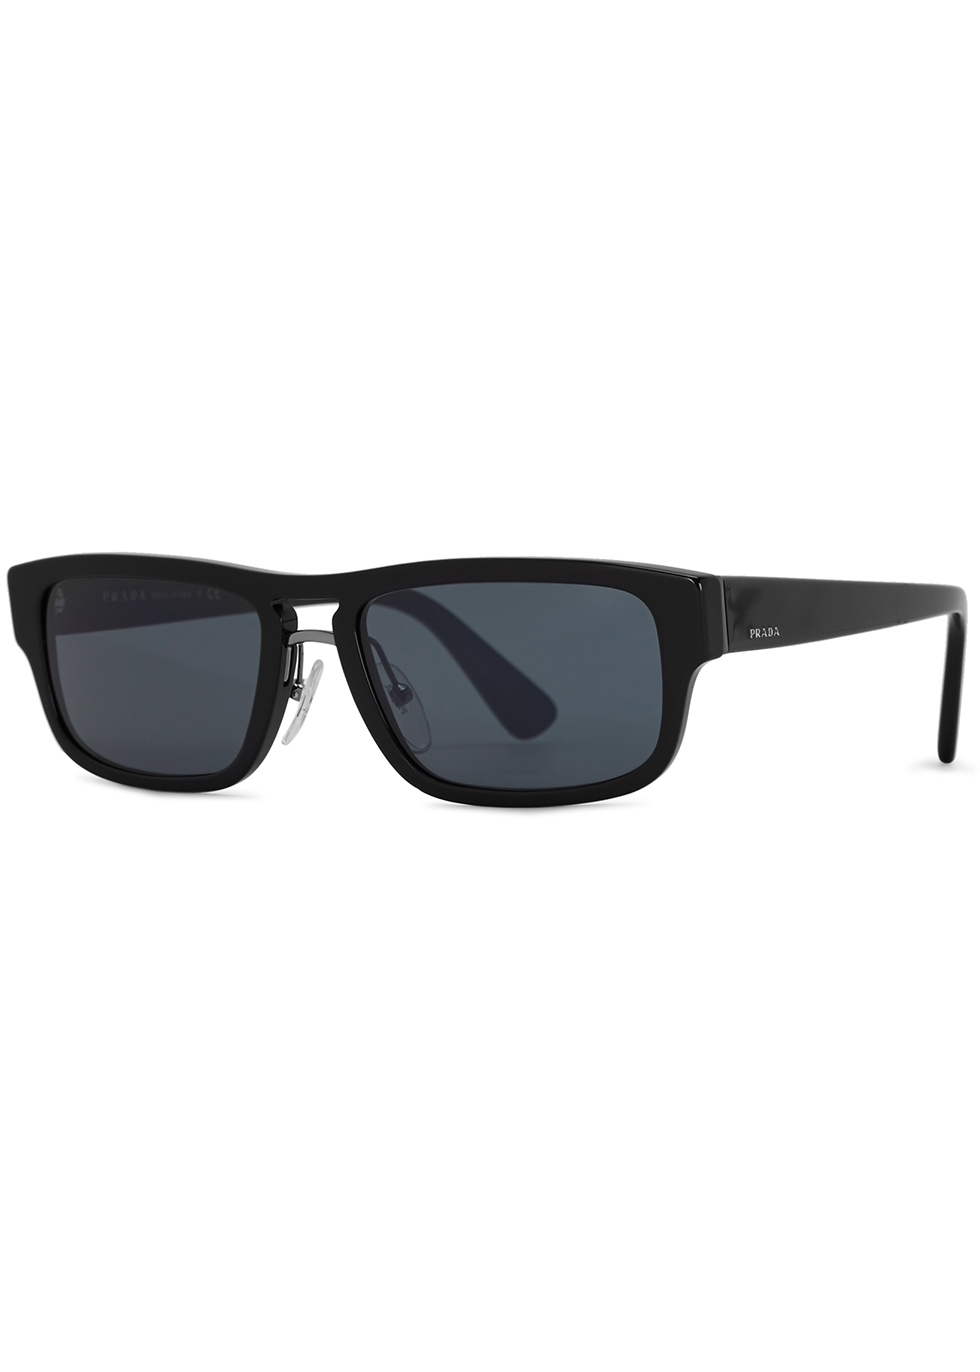 e9fc5653130 Women s Designer Sunglasses and Eyewear - Harvey Nichols